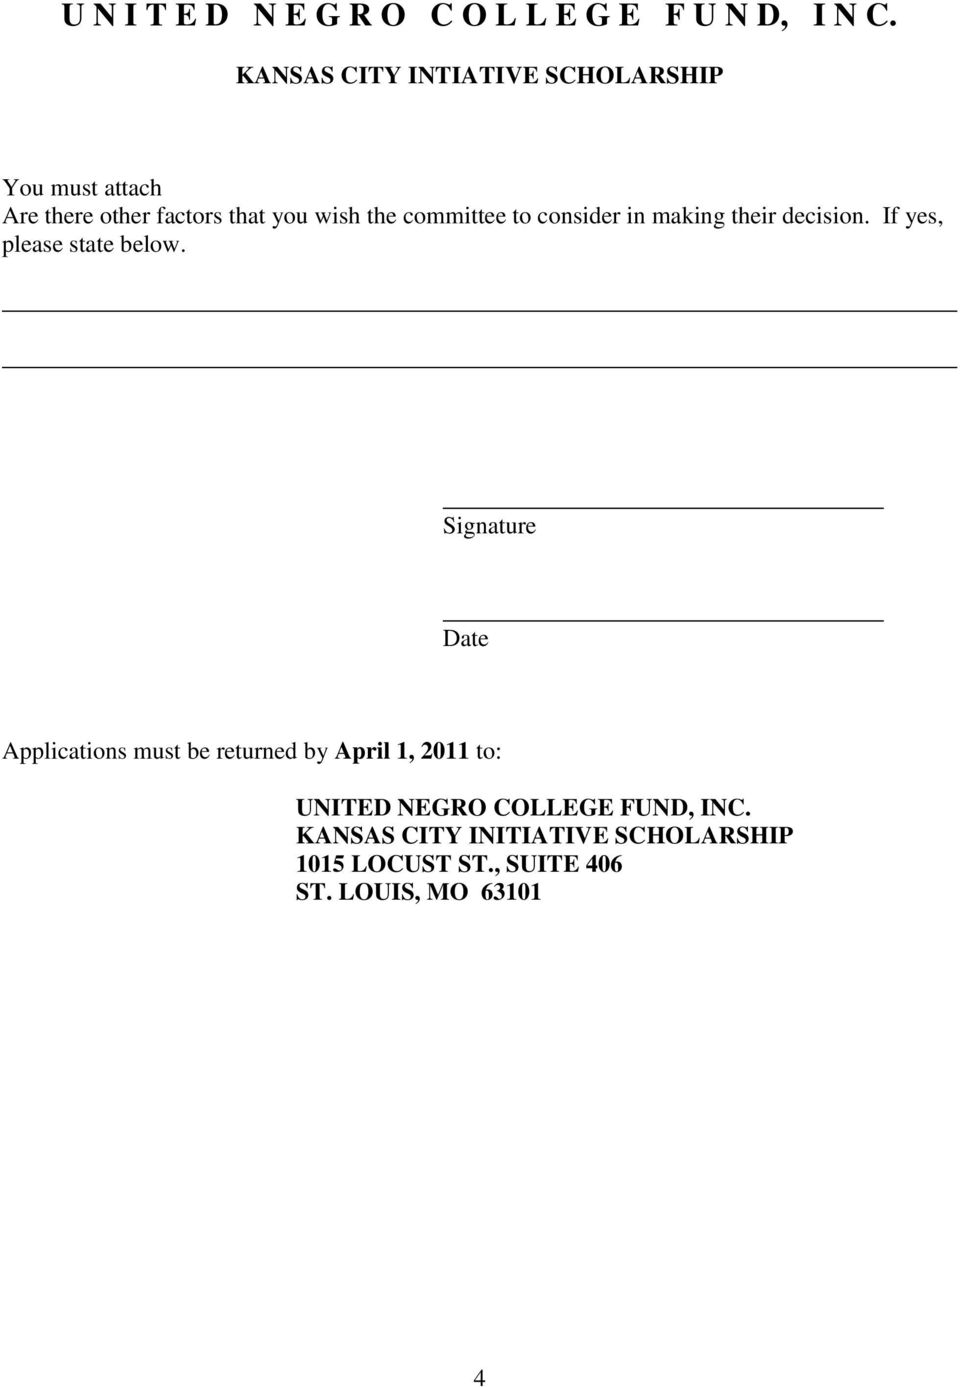 Signature Date Applications must be returned by April 1, 2011 to: UNITED NEGRO